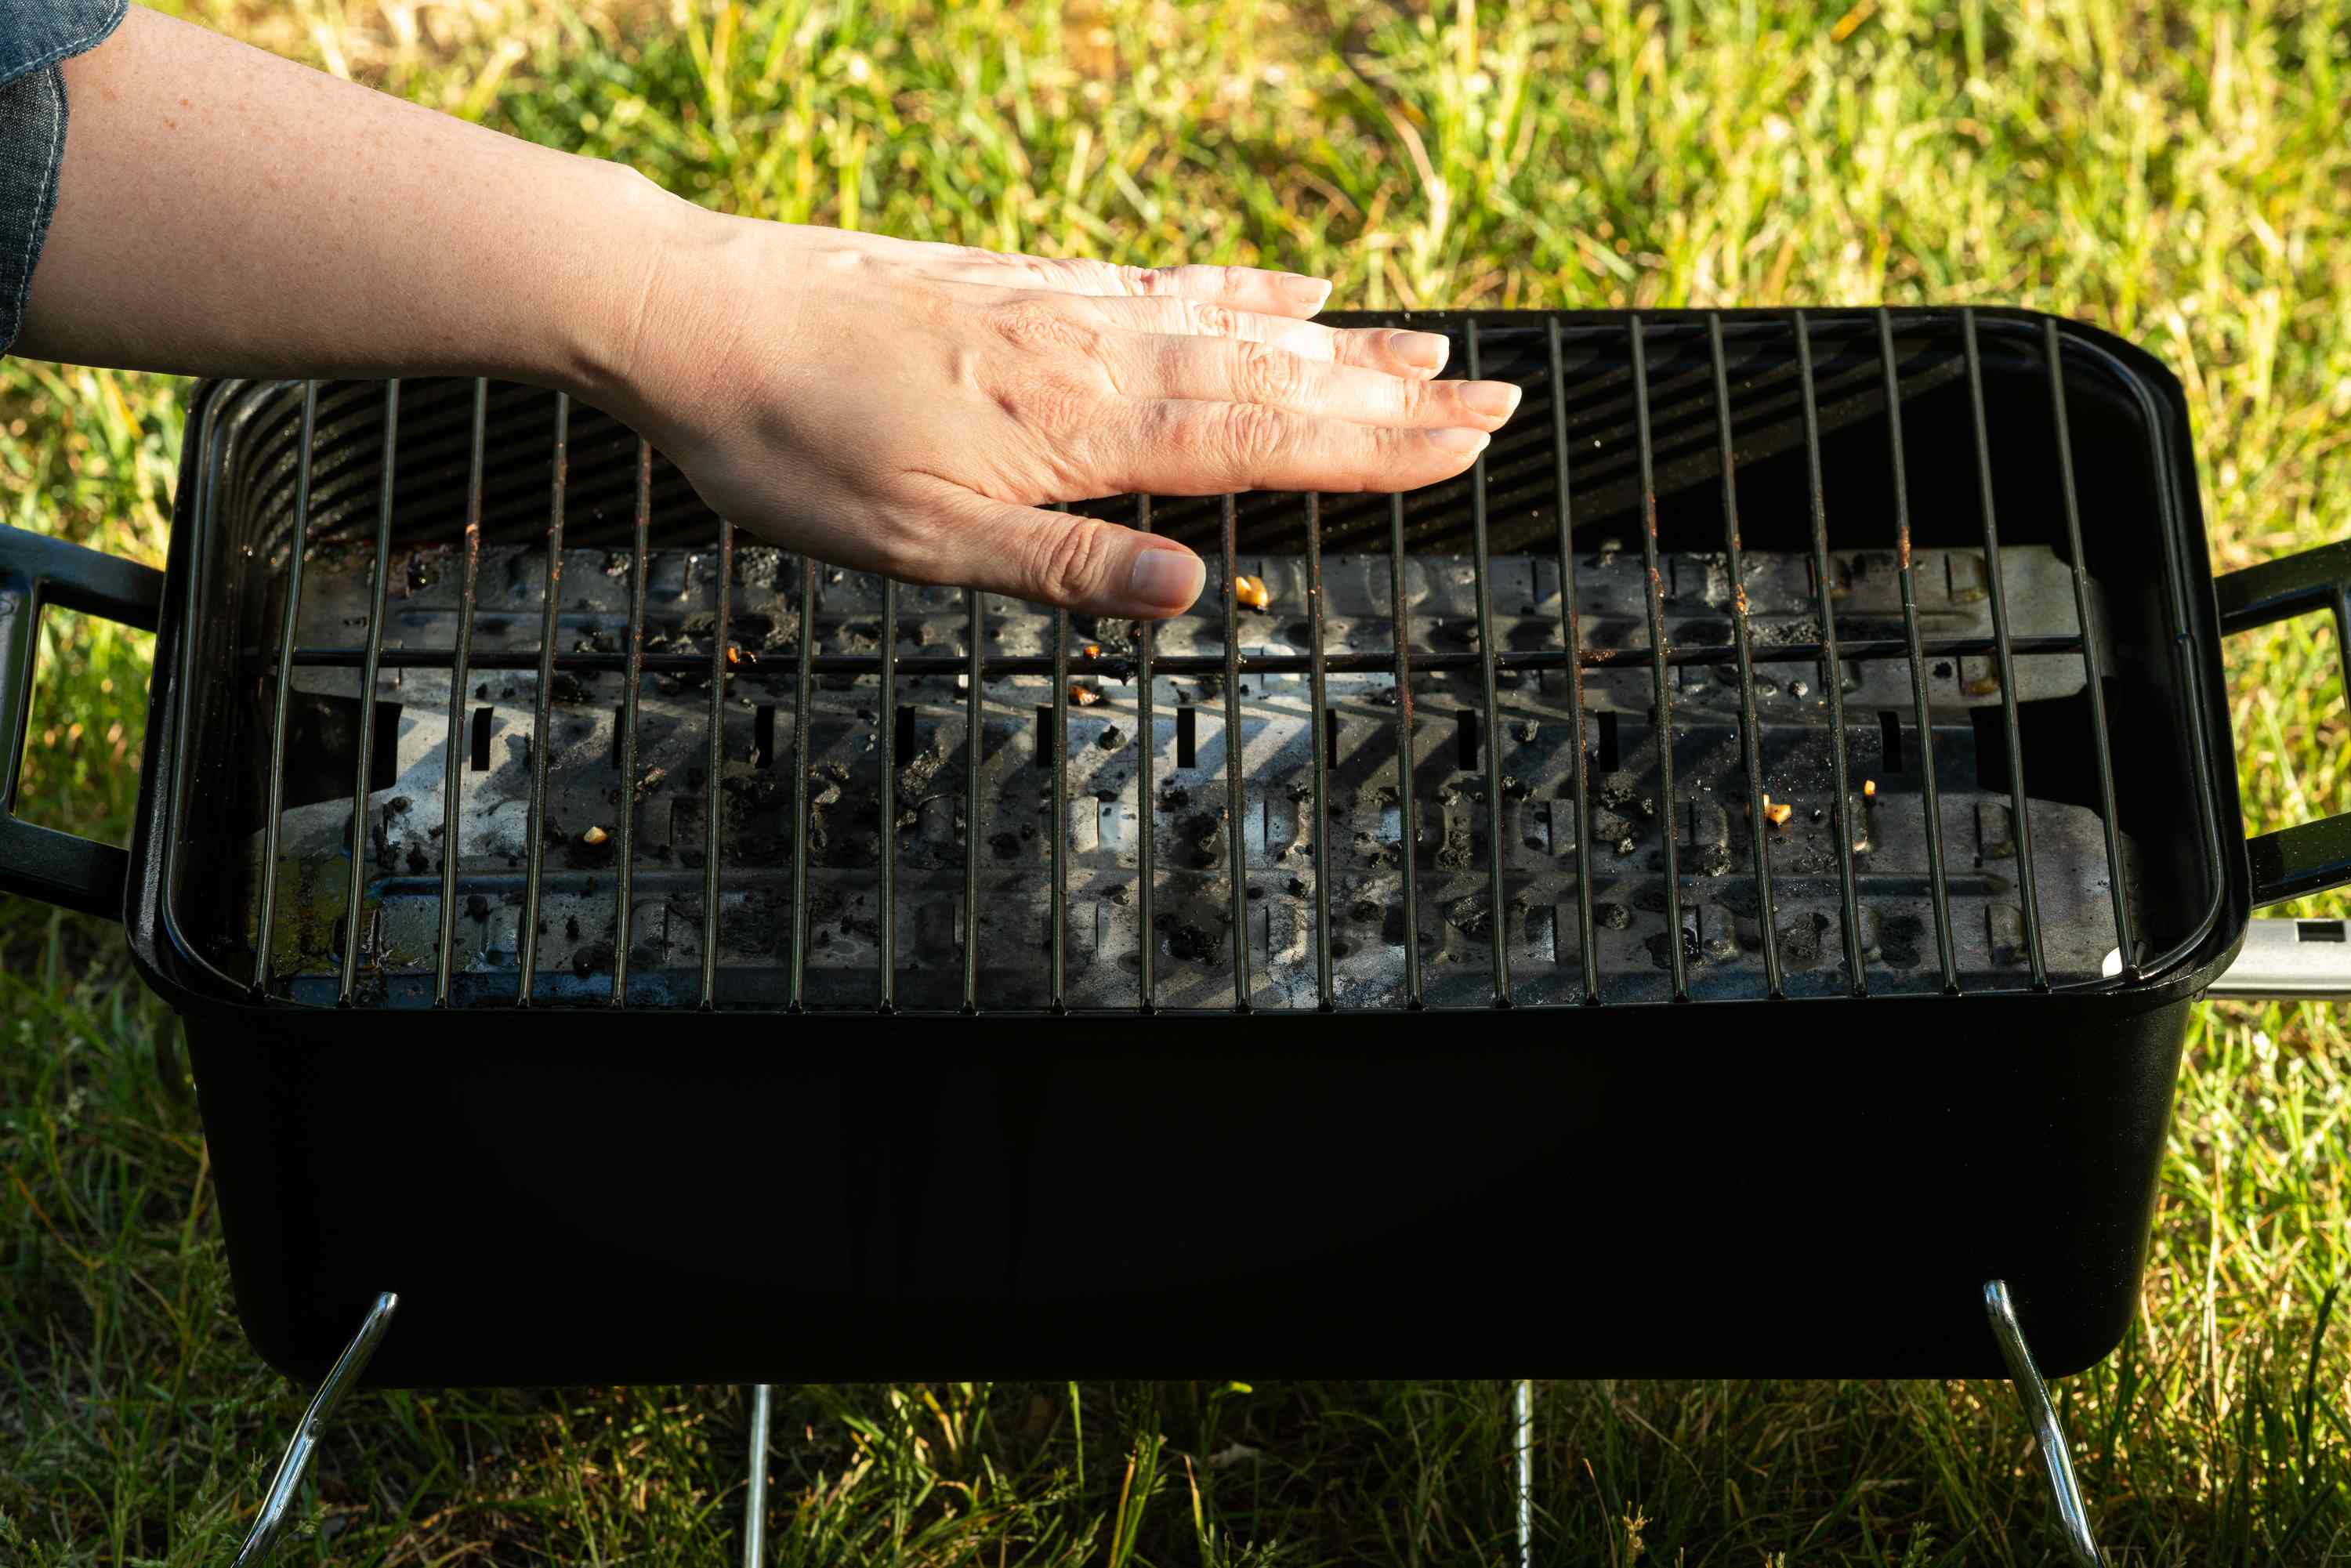 hand over charcoal grill to test temperature of grill